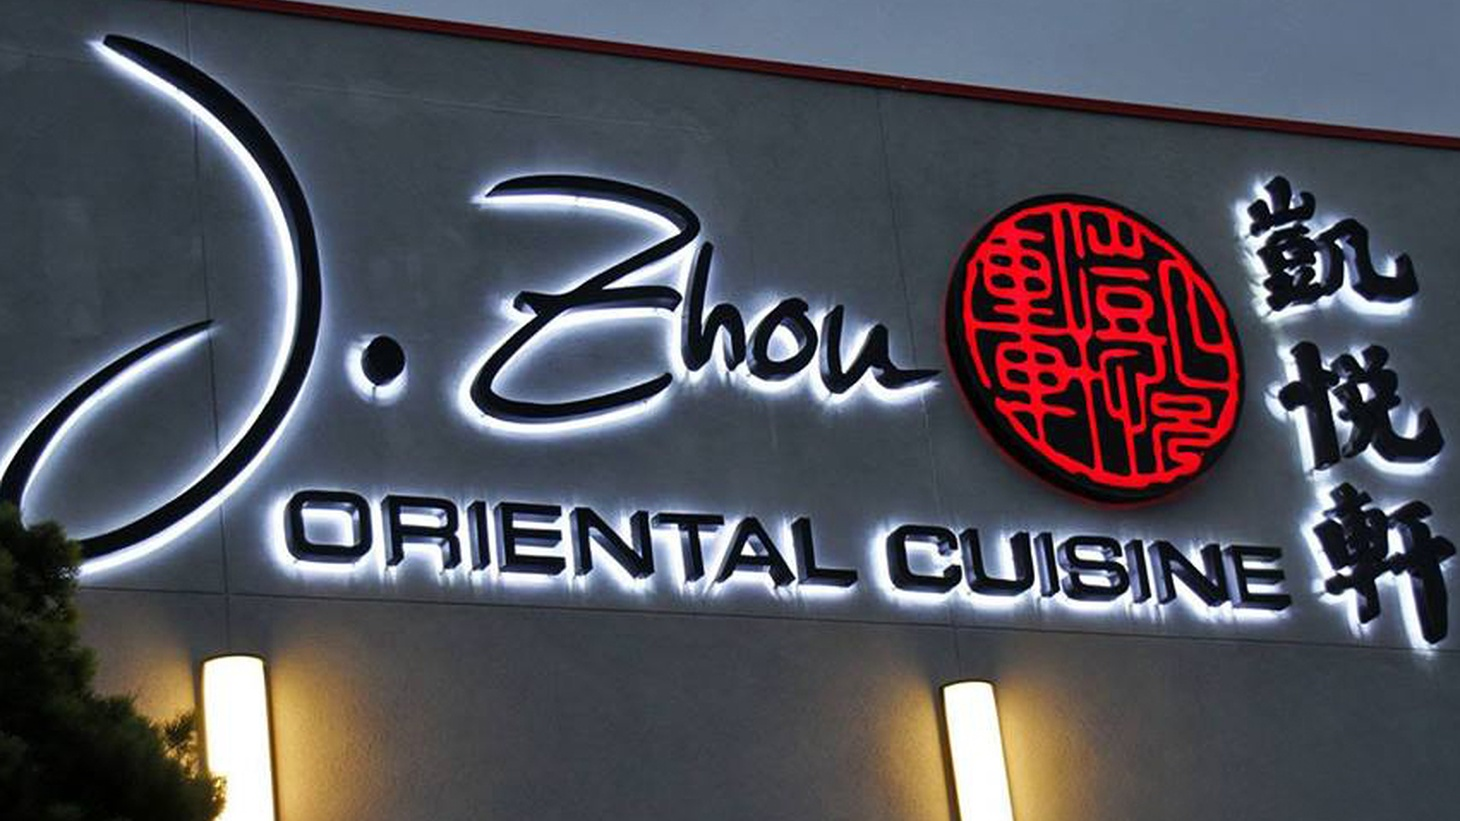 Jonathan Gold visits J Zhou Oriental Cuisine, an ambitious Chinese restaurant located in The District, a sprawling open air mall in Tustin.